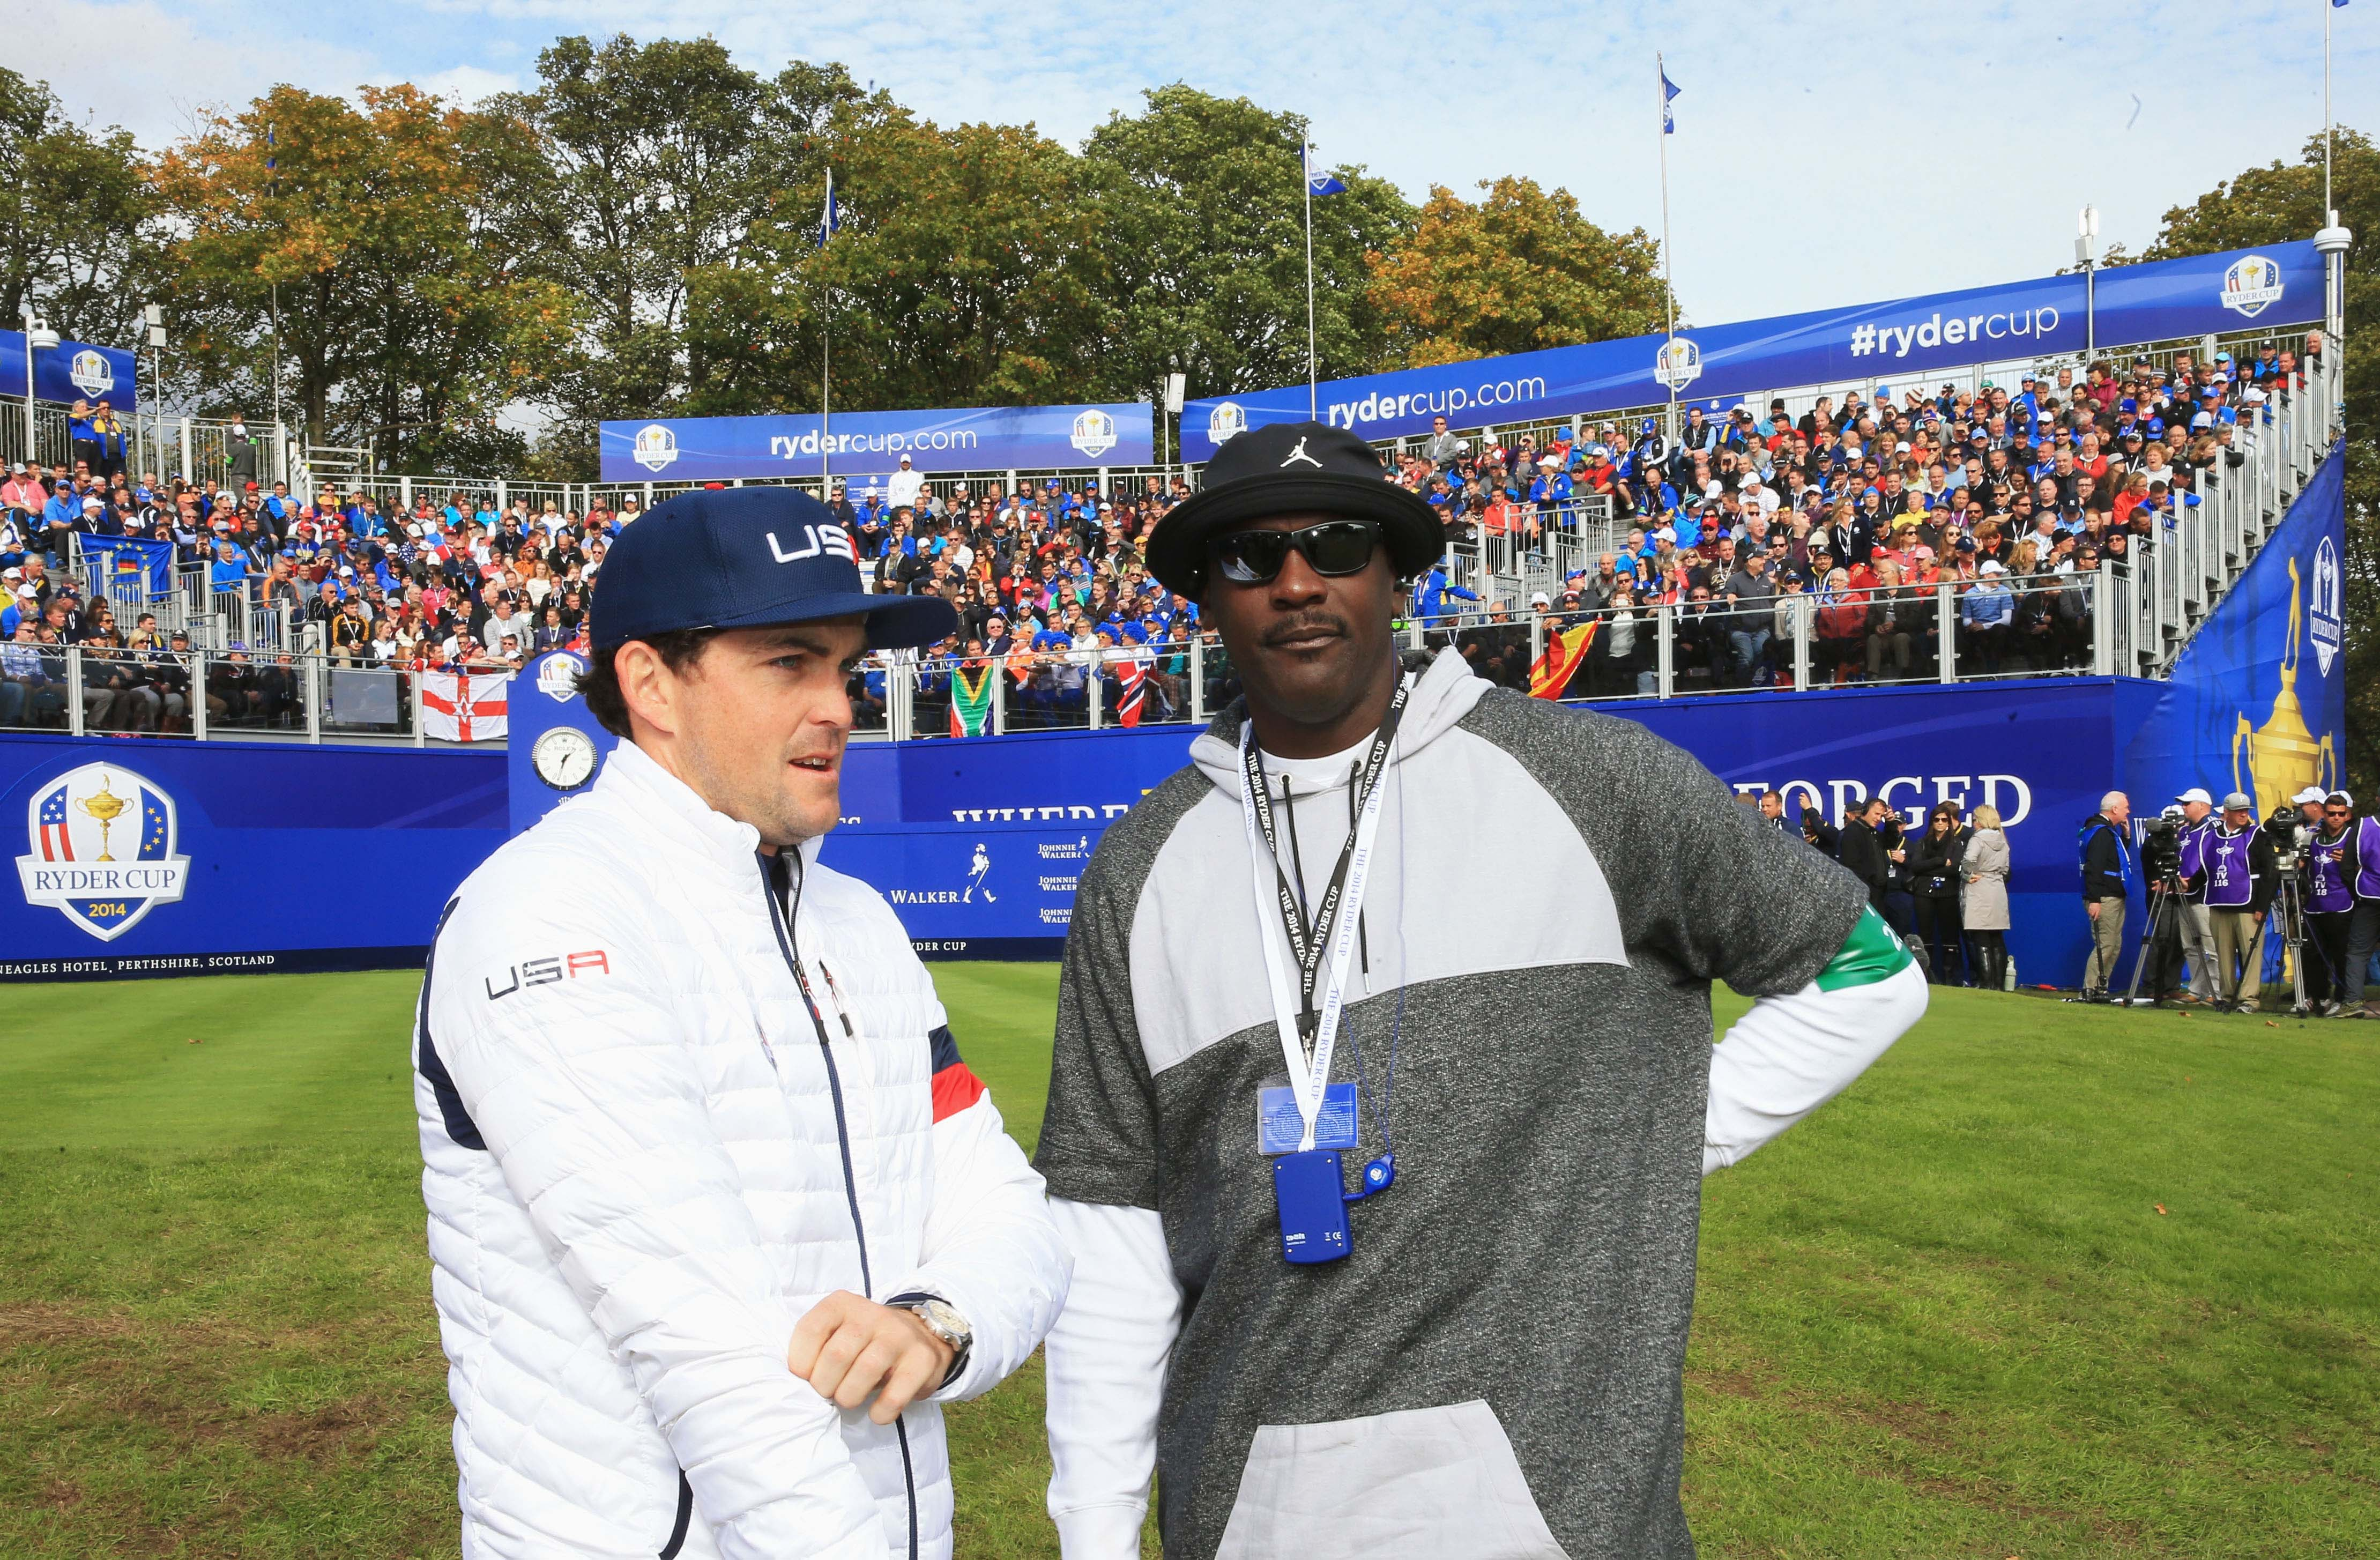 Michael Jordan dissing Keegan Bradley on Twitter